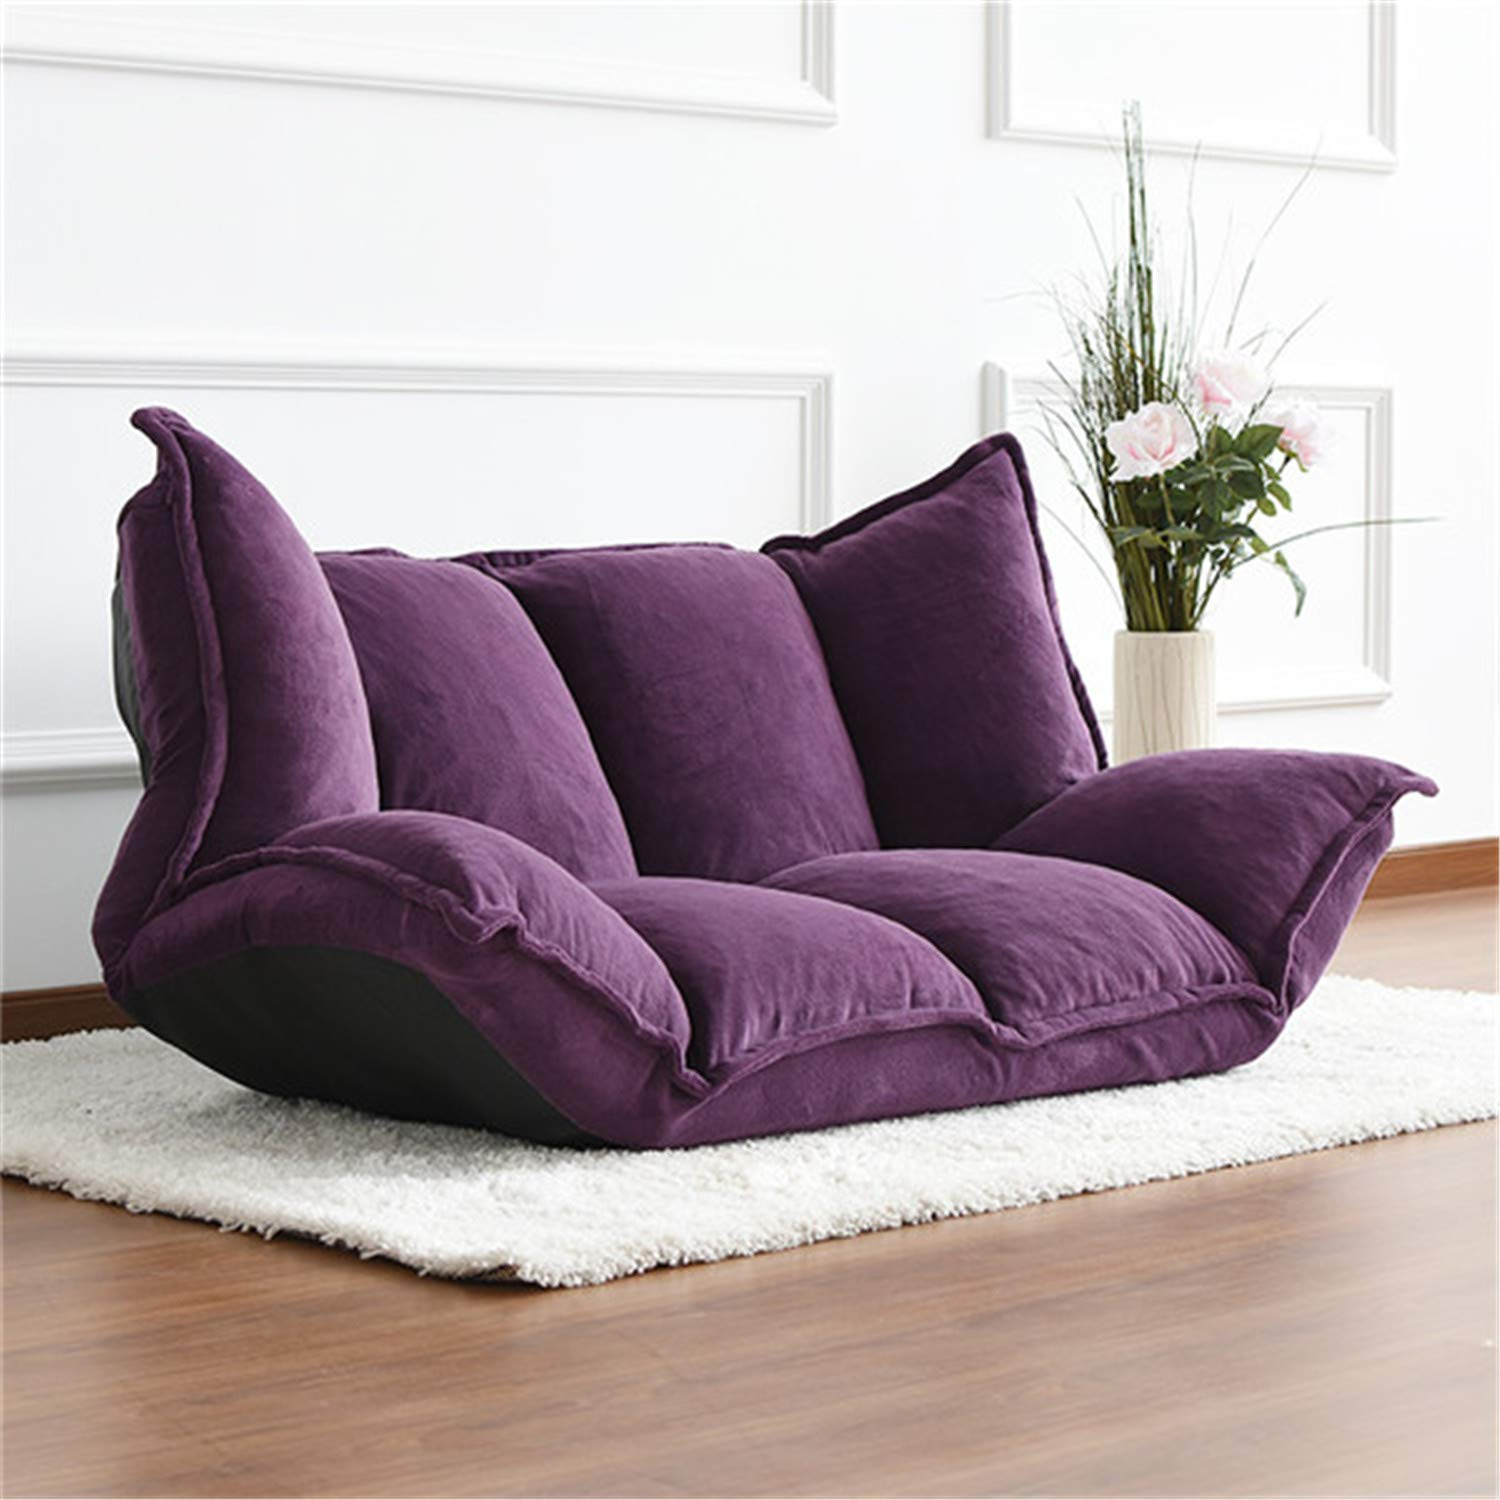 ZZSF Floor Furniture Reclining Japanese Futon Lazy Sofa Bed Modern Folding Adjustable Sleeper Chaise Lounge Recliner Living Room Sofa Indoor Loungers Purple by ZZSF